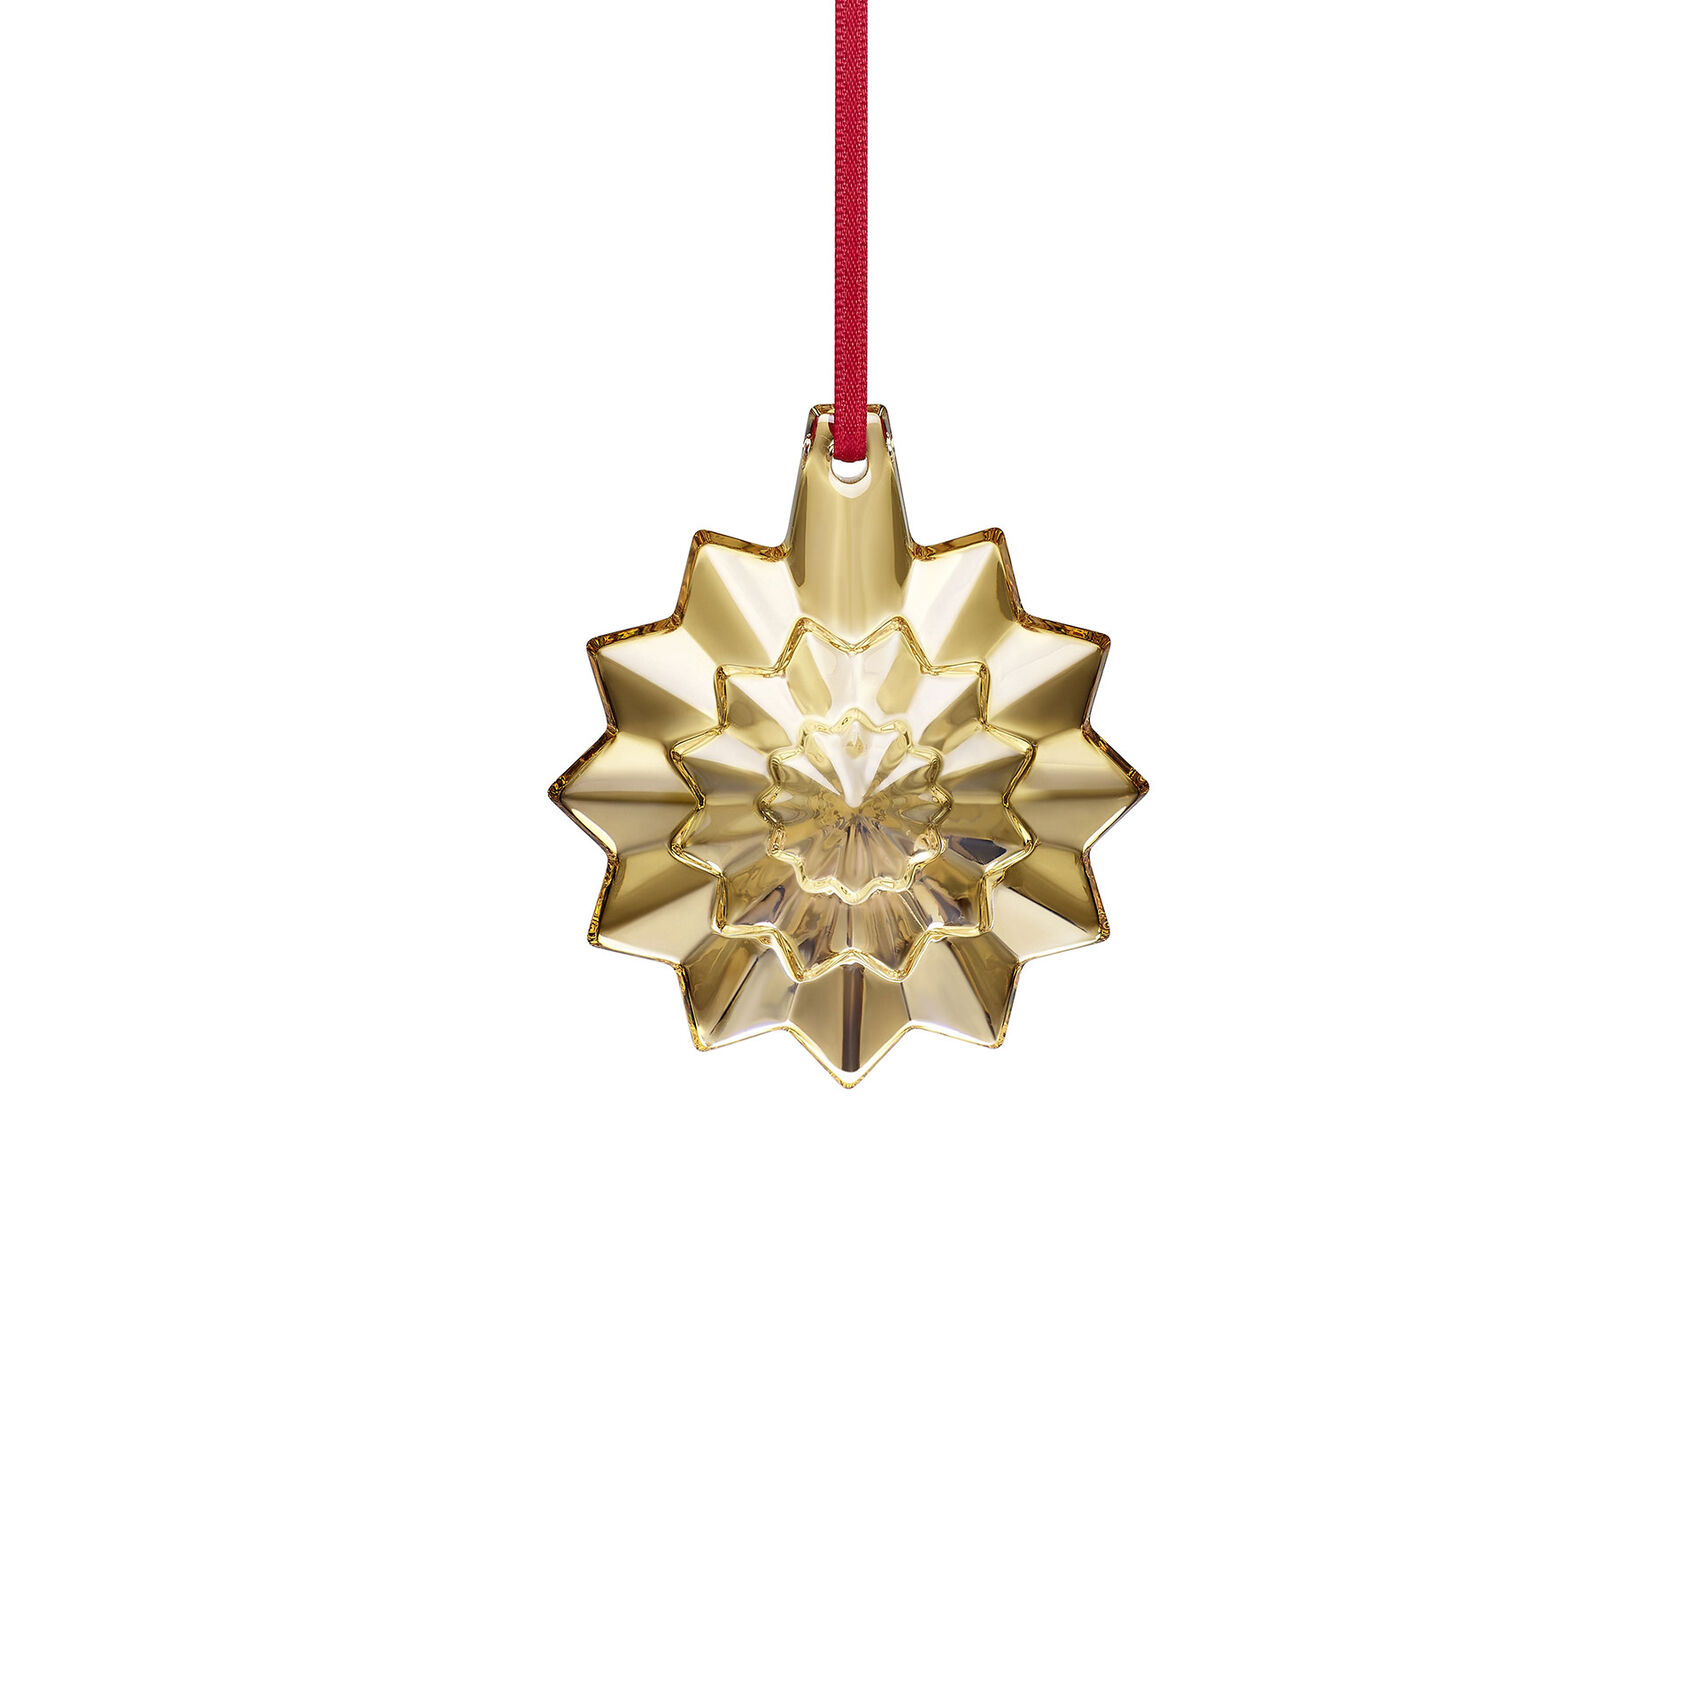 Christmas Annual Ornament Engraved No 203 L 2019 Baccarat